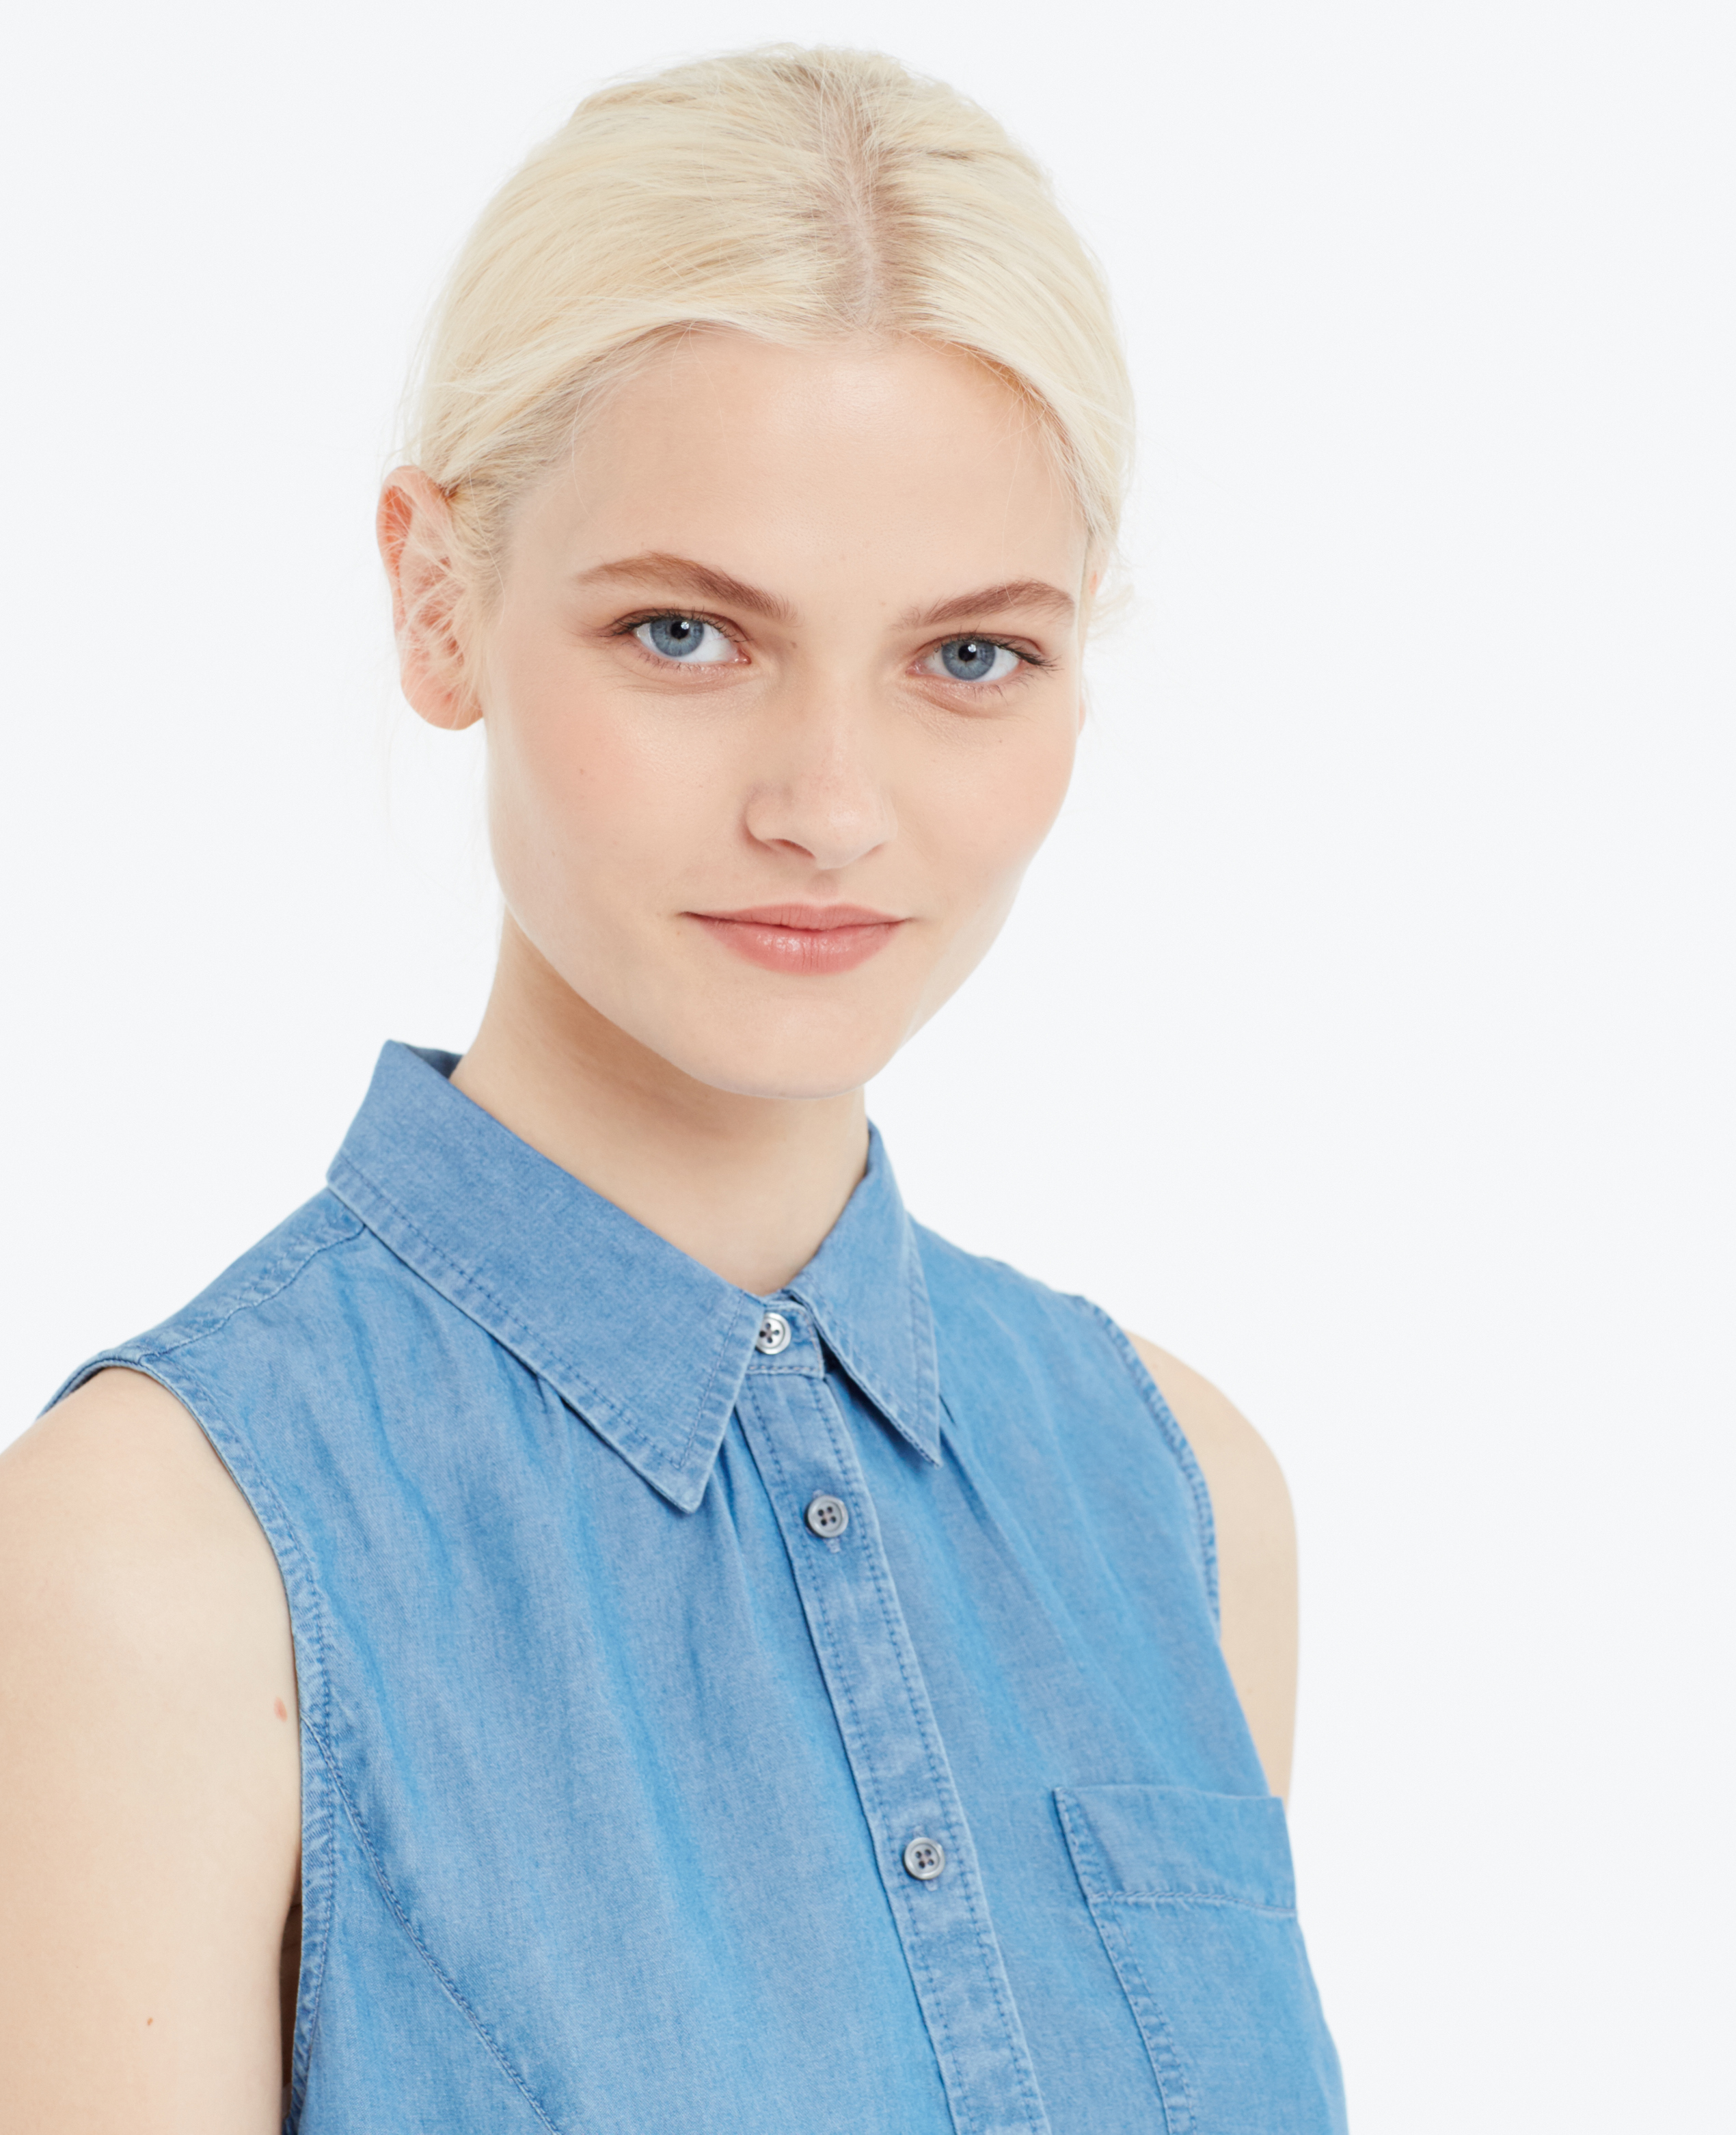 Ann taylor Petite Sleeveless Chambray Shirt in Blue (Oceanside Chambray)   Lyst - ann-taylor-oceanside-chambray-petite-sleeveless-chambray-shirt-blue-product-2-062242924-normal